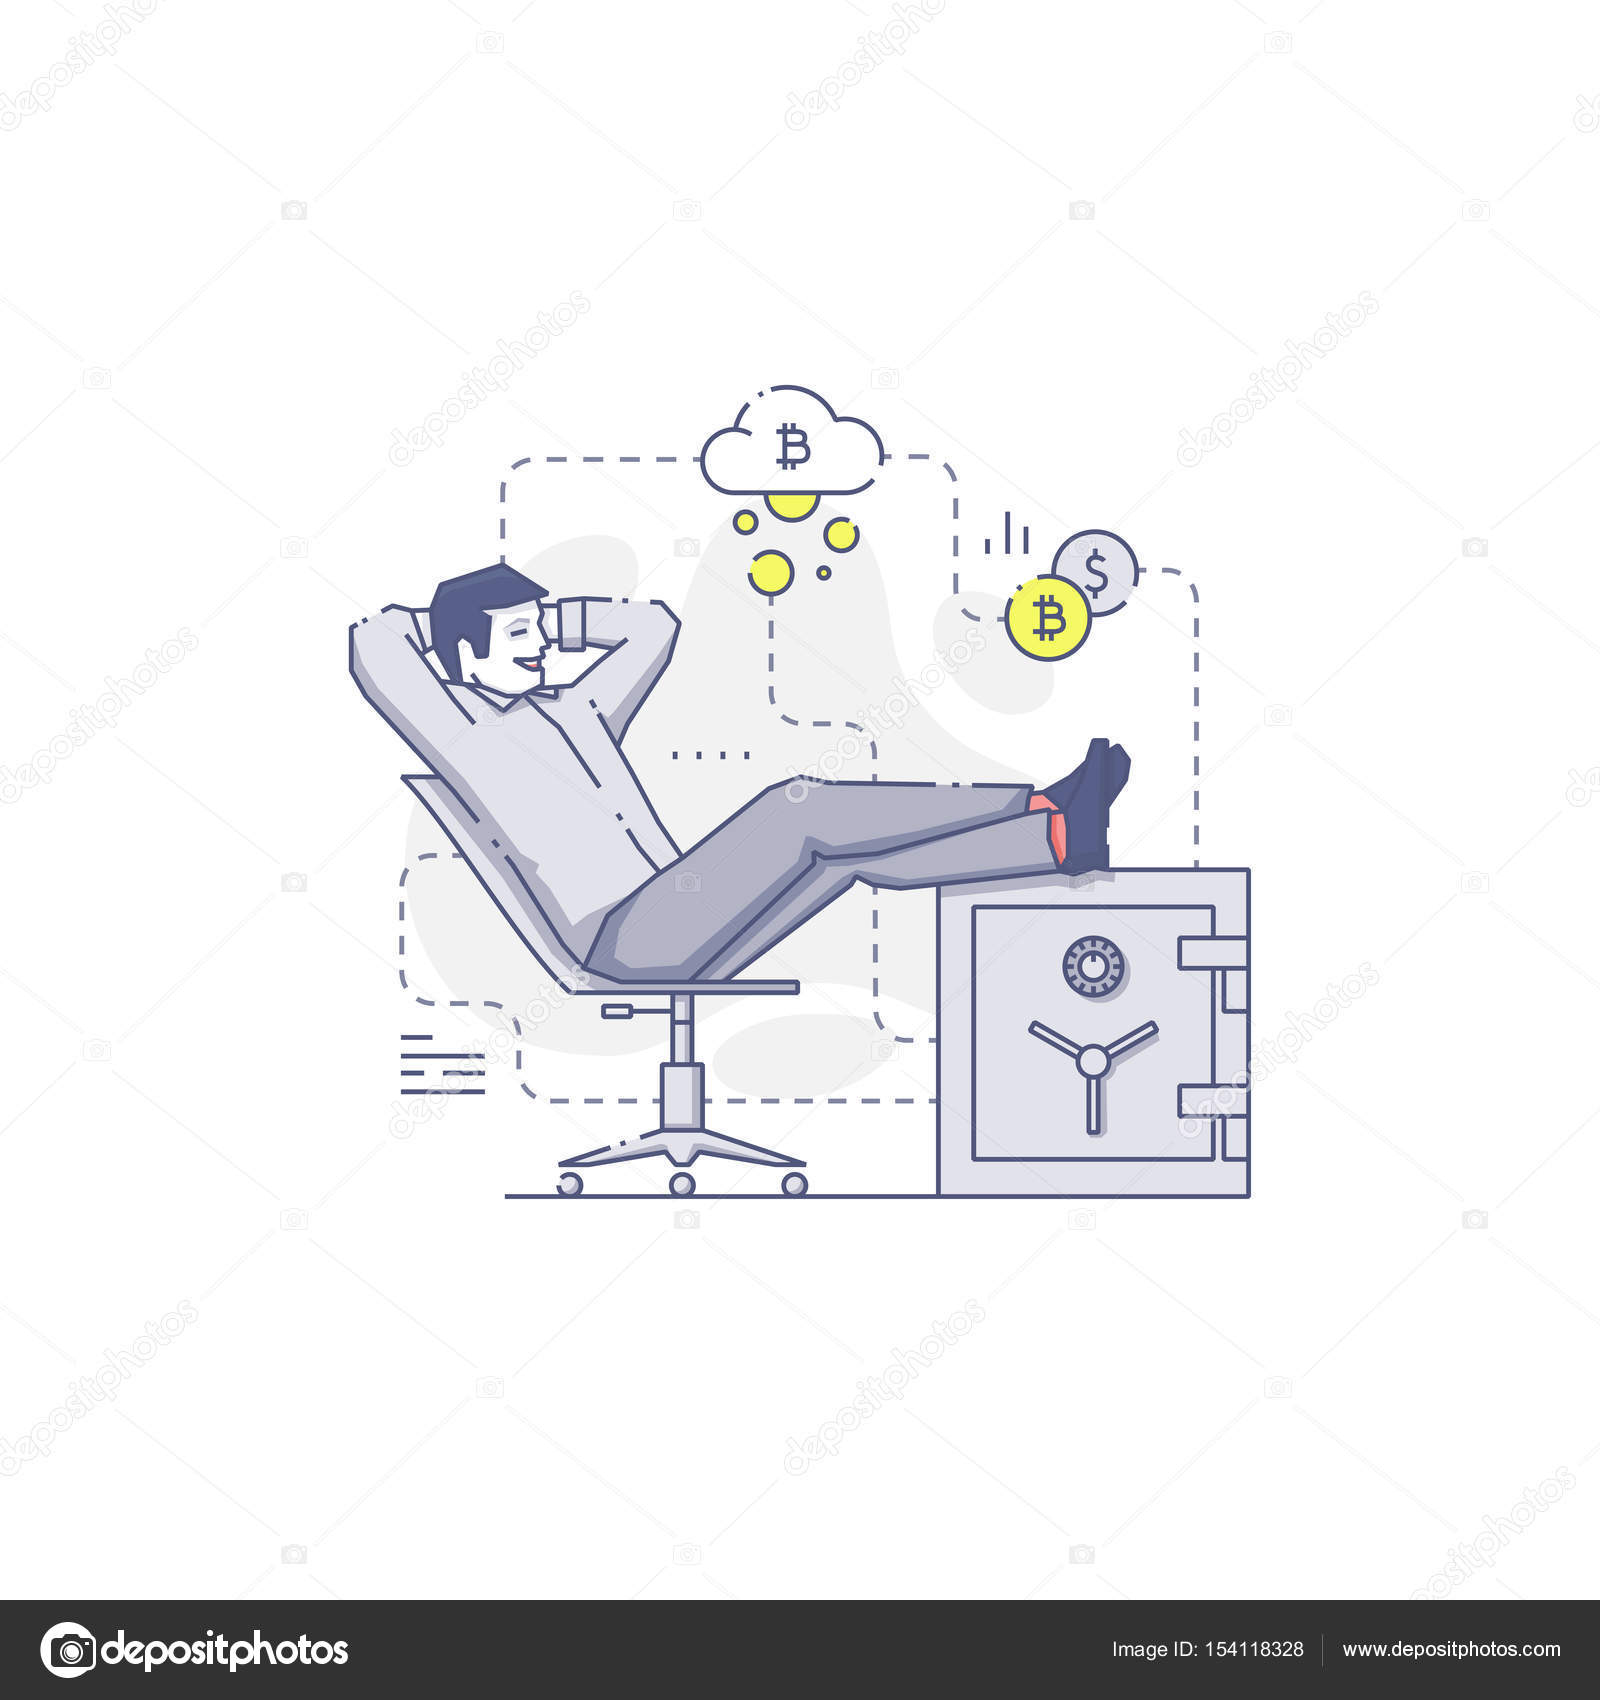 Feet up diagram new wiring diagram 2018 happy young man sits with feet up on a safe with bitcoins stock anatomical diagram of foot bottom of foot diagram names bottom of foot diagram on feet up pooptronica